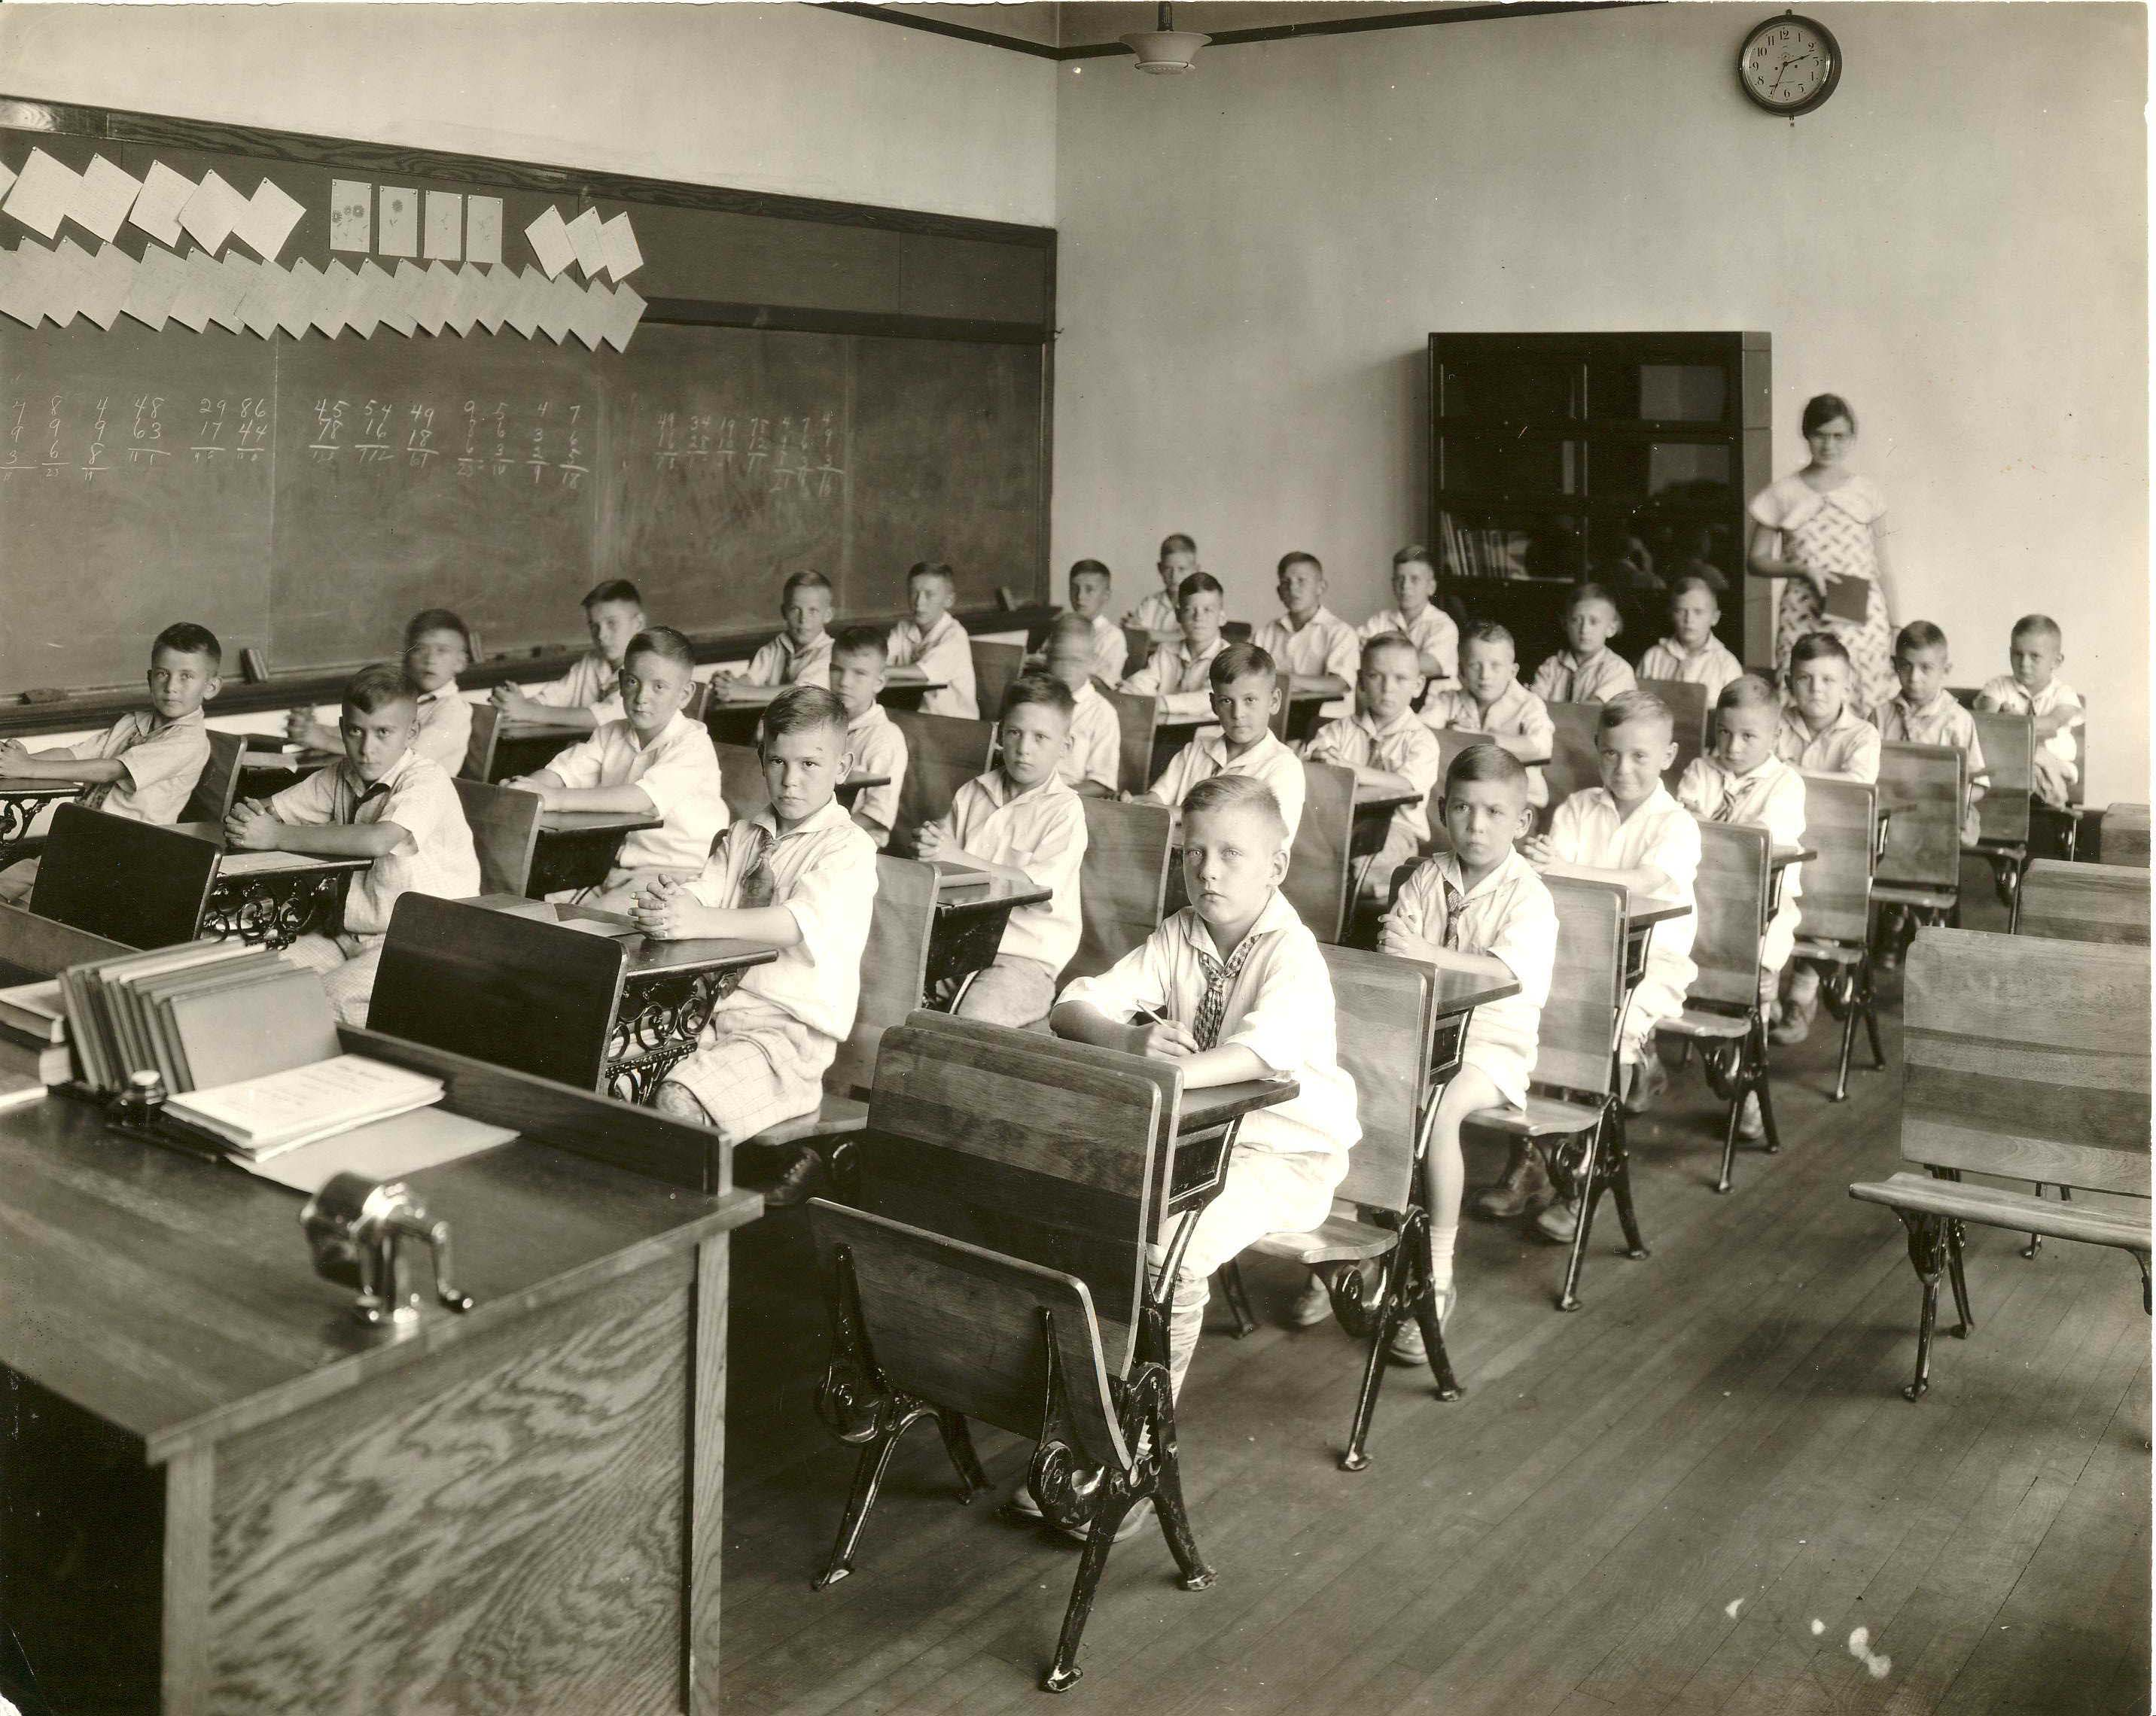 Fourth-graders during the 1930s